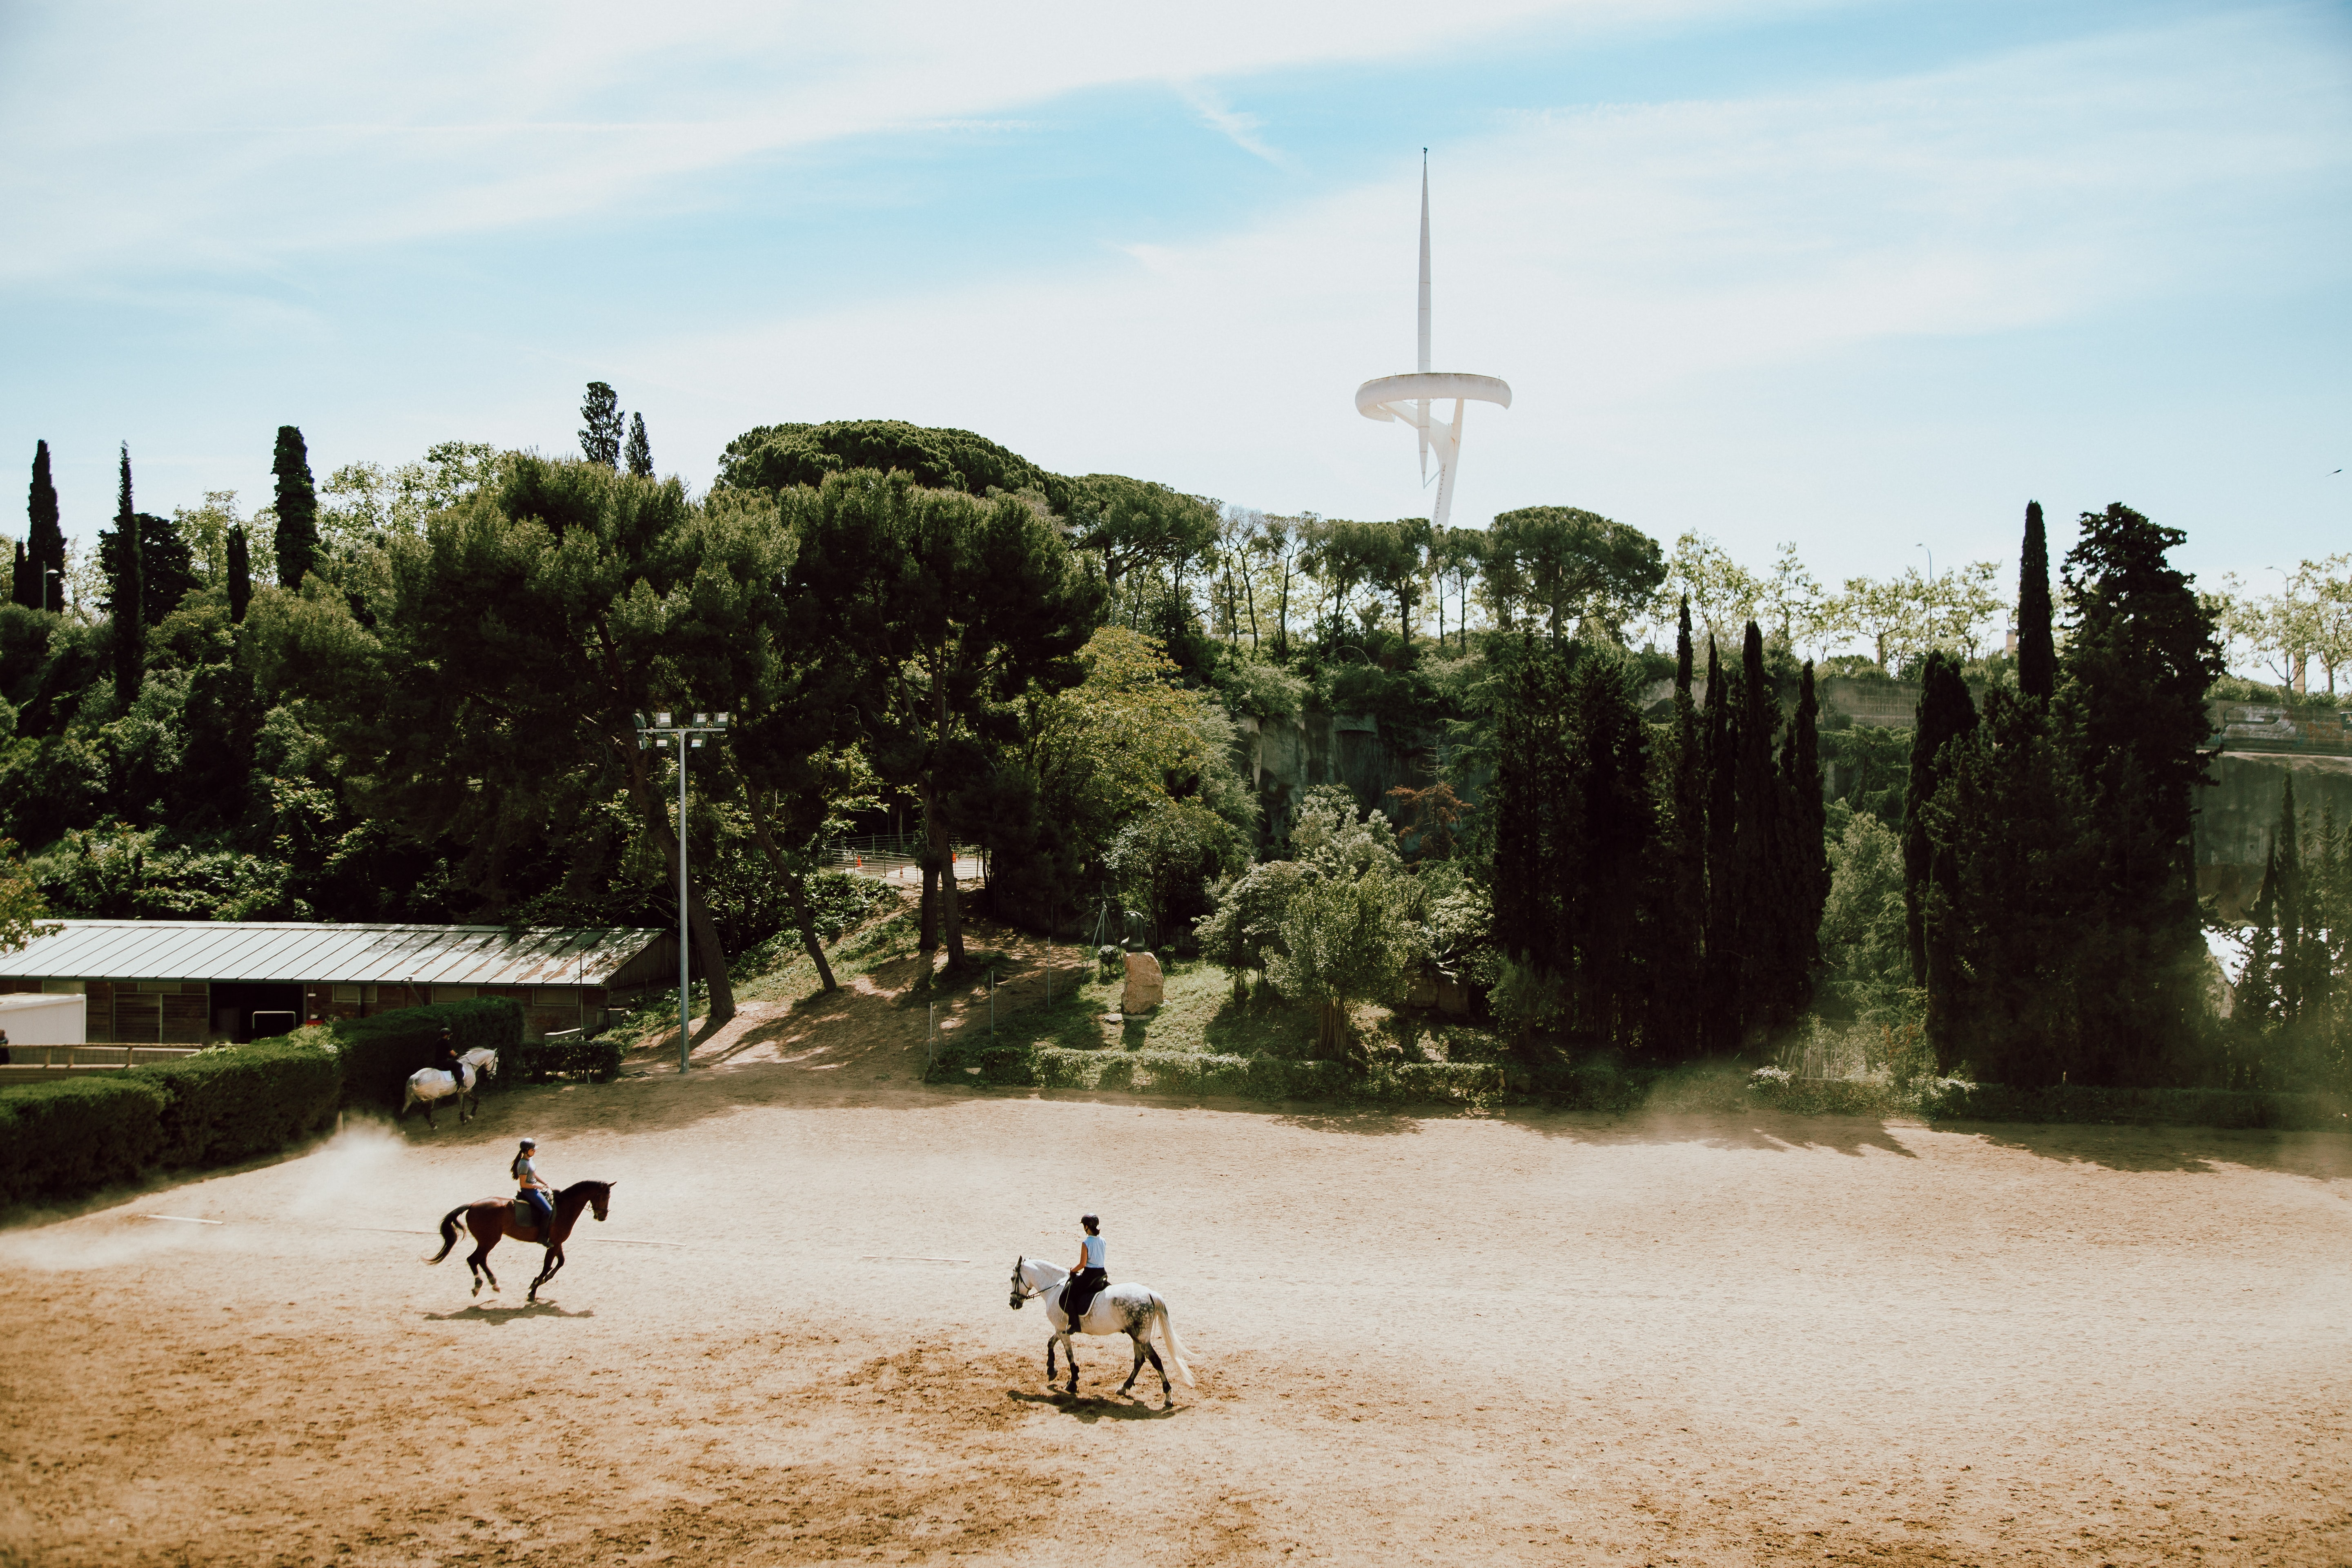 two person on horses on field